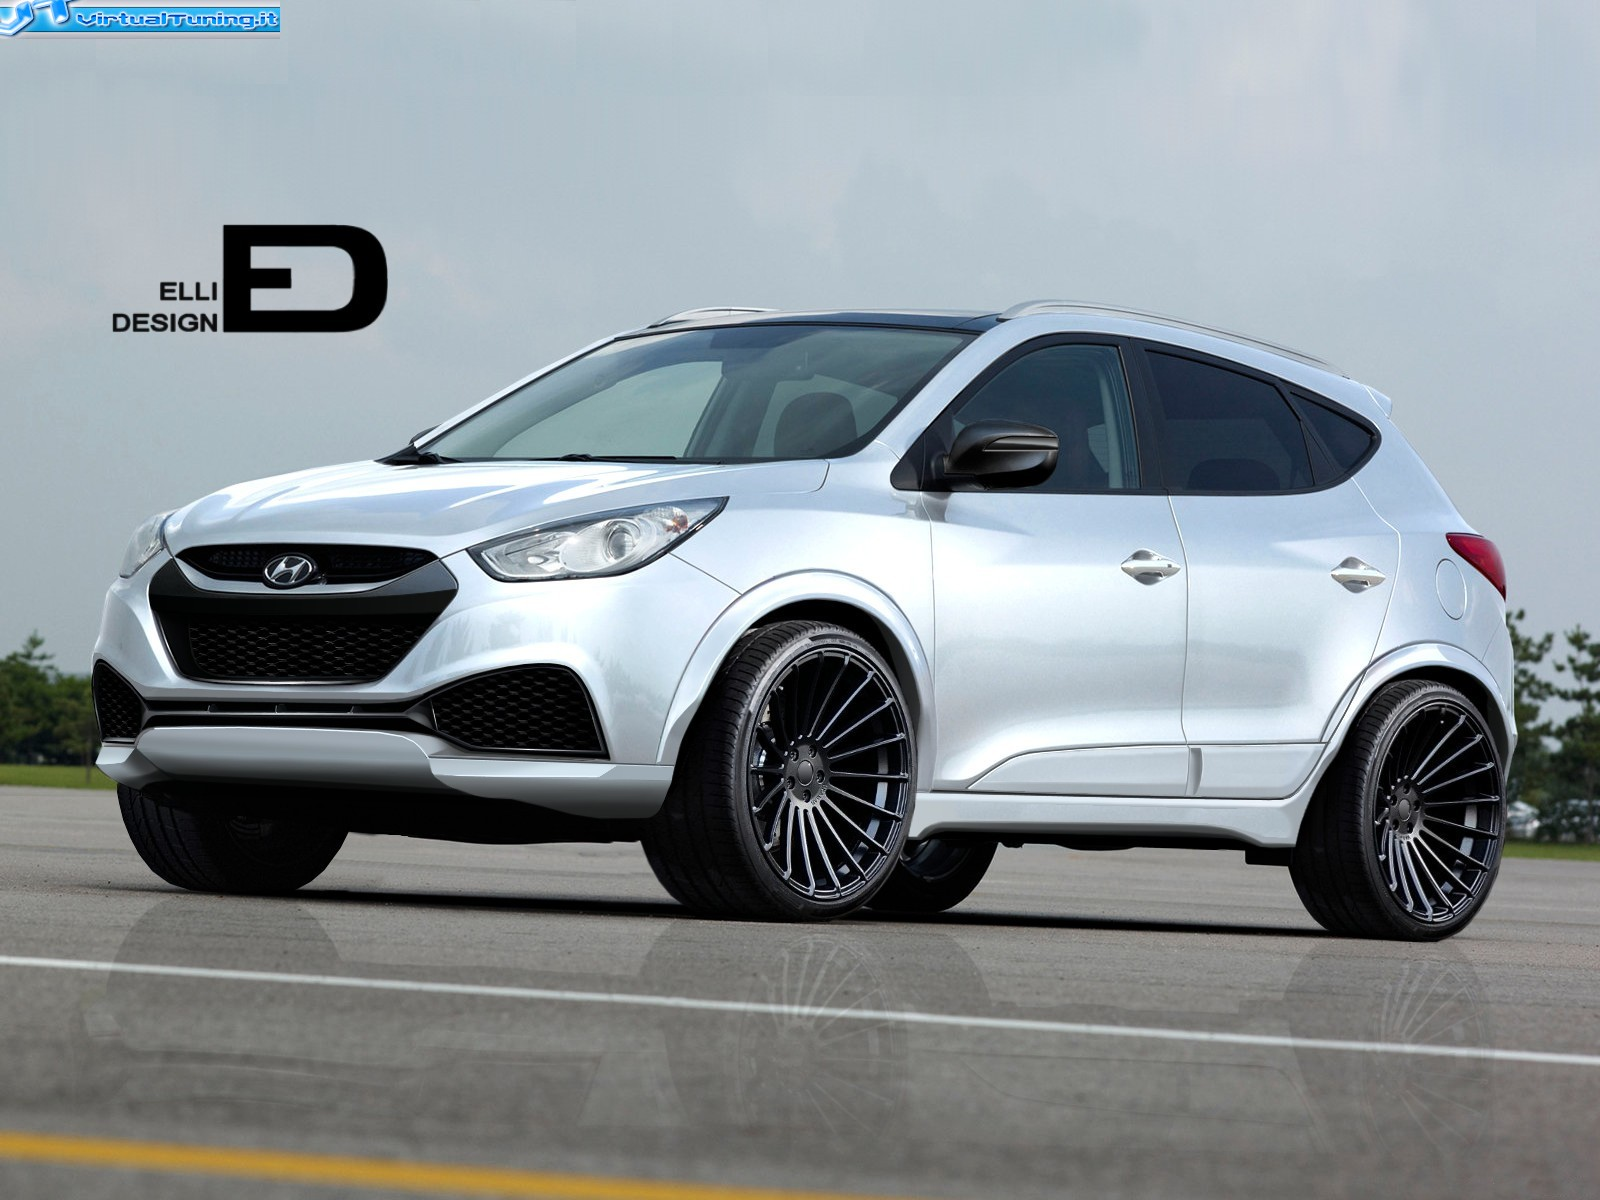 Hyundai Ix35 2017 >> HYUNDAI ix35 by Elli Design ..:: VirtualTuning.IT